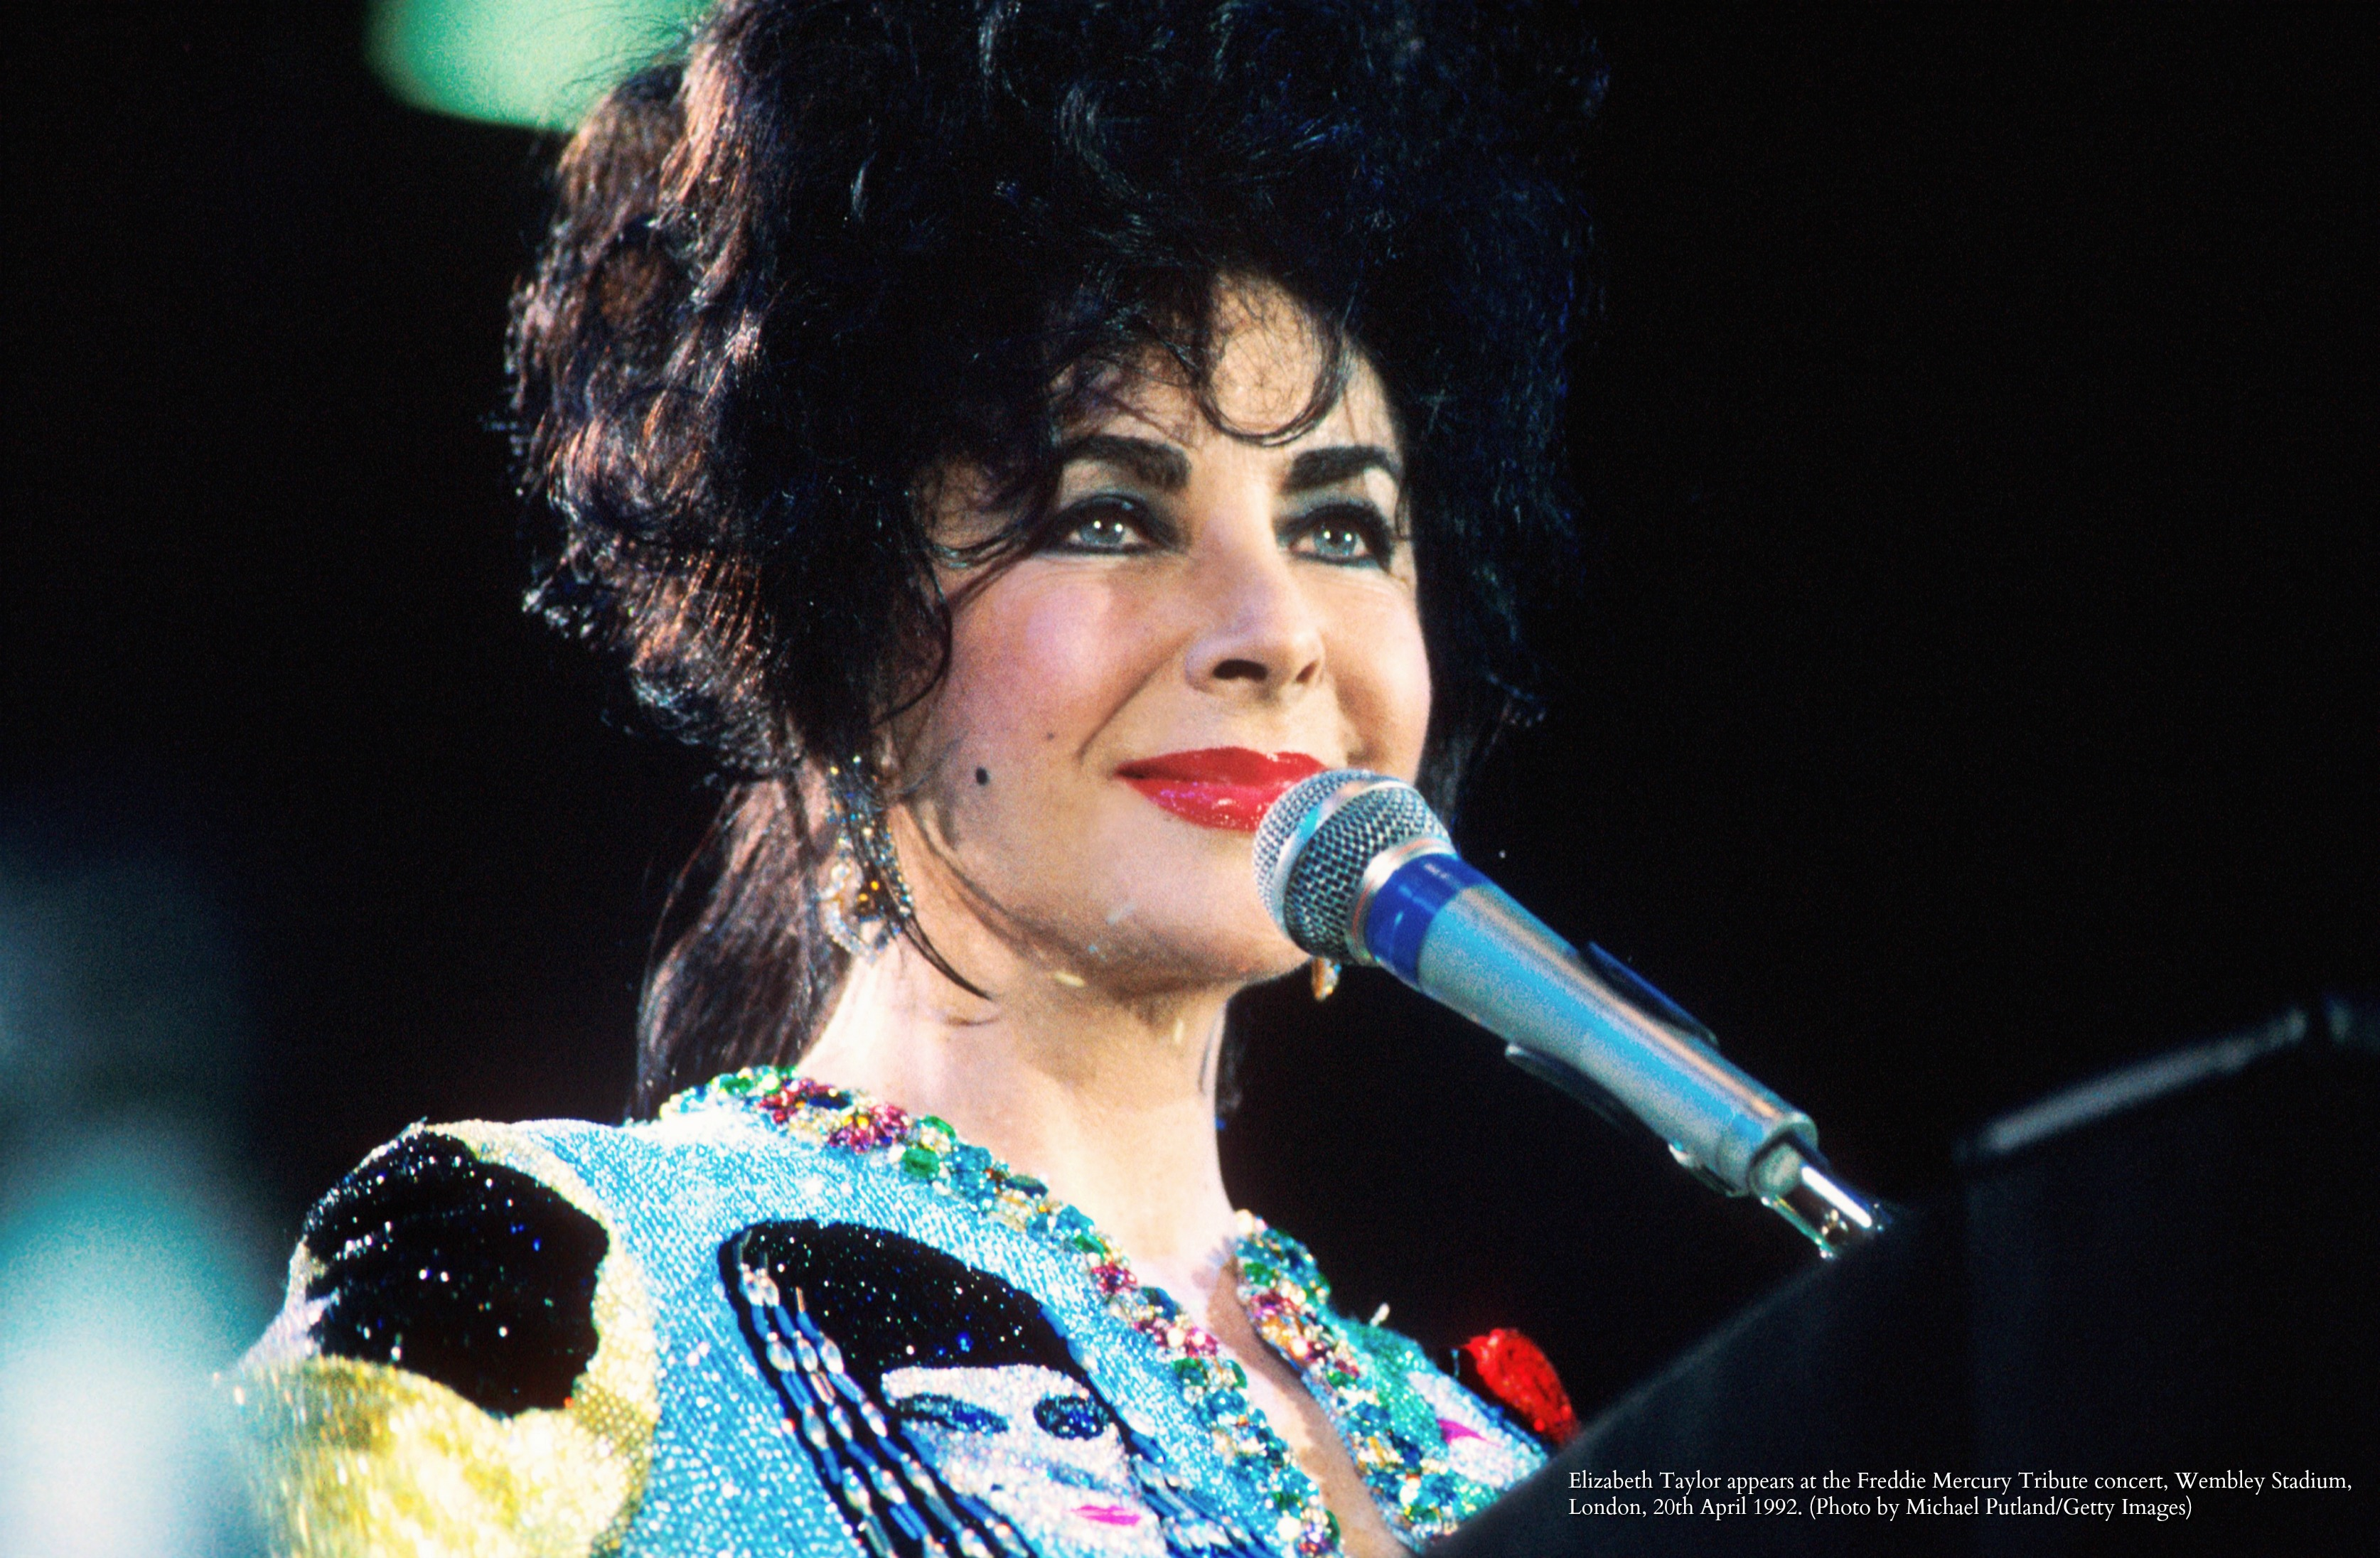 Elizabeth Taylor appears at the Freddie Mercury Tribute concert, Wembley Stadium, London, 20th April 1992. (Photo by Michael Putland/Getty Images)